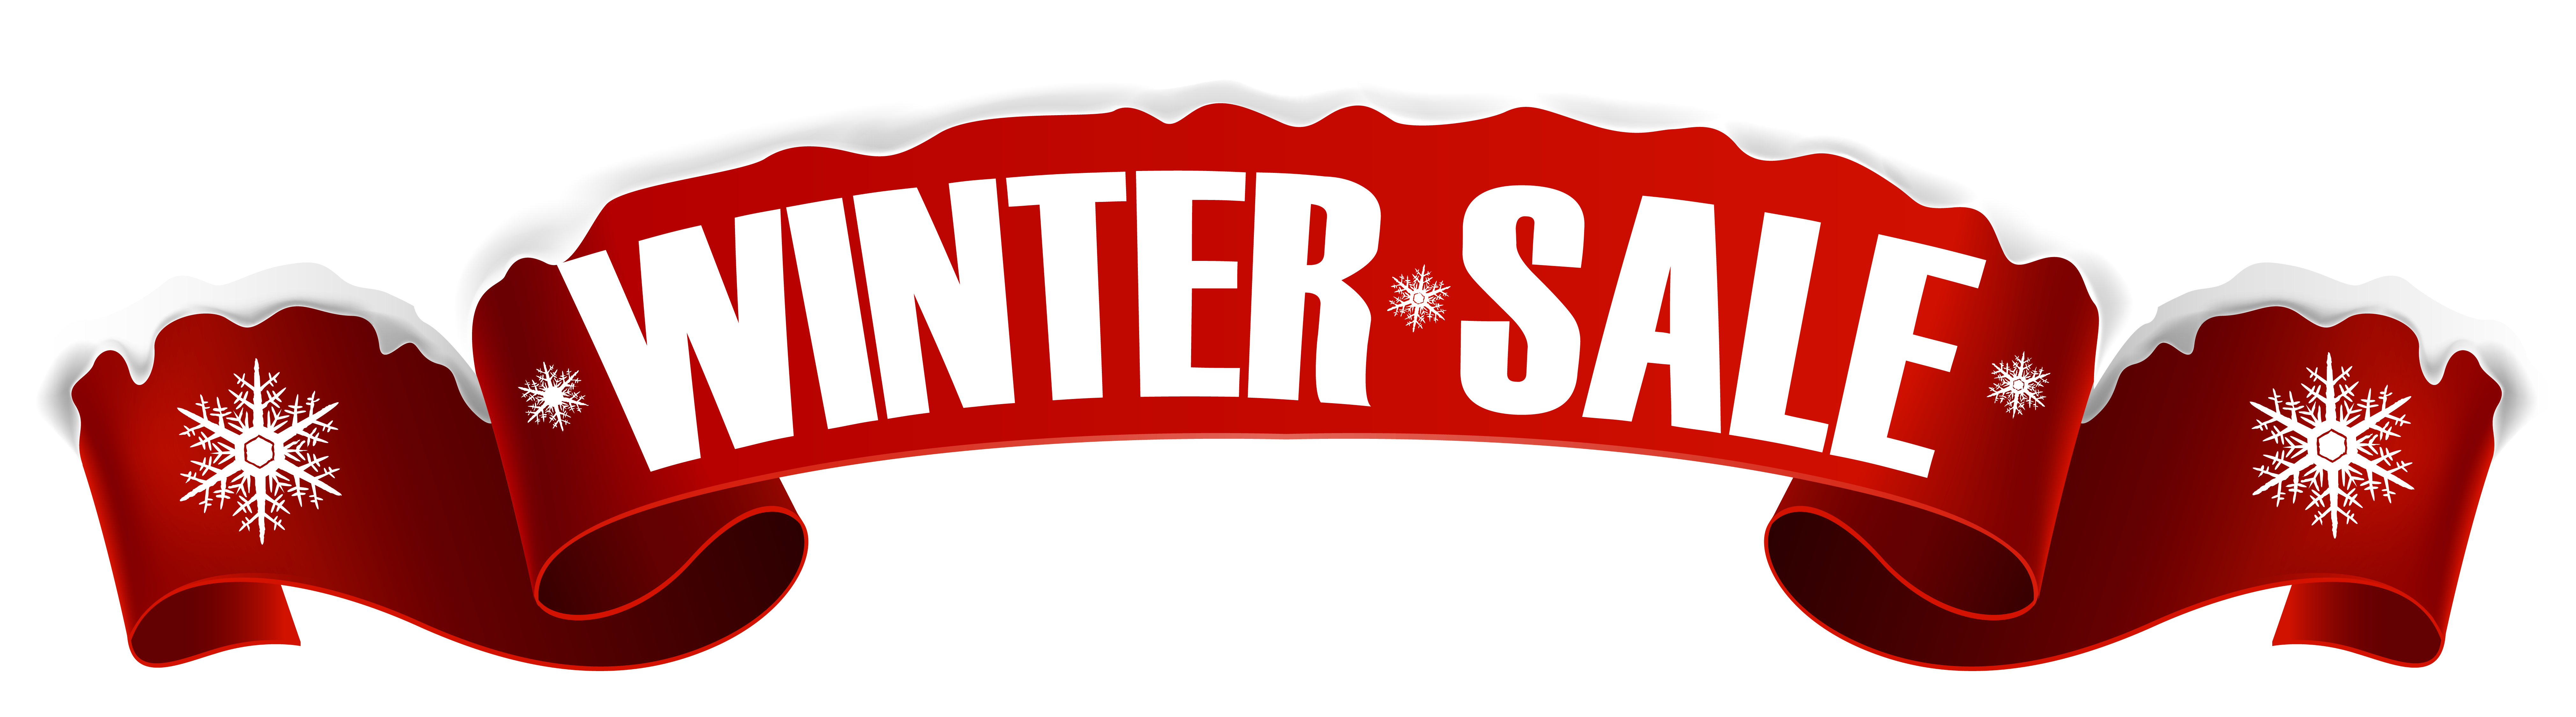 Christmas sale clipart royalty free Winter Sale Banner Transparent PNG Clip Art Image | Gallery ... royalty free